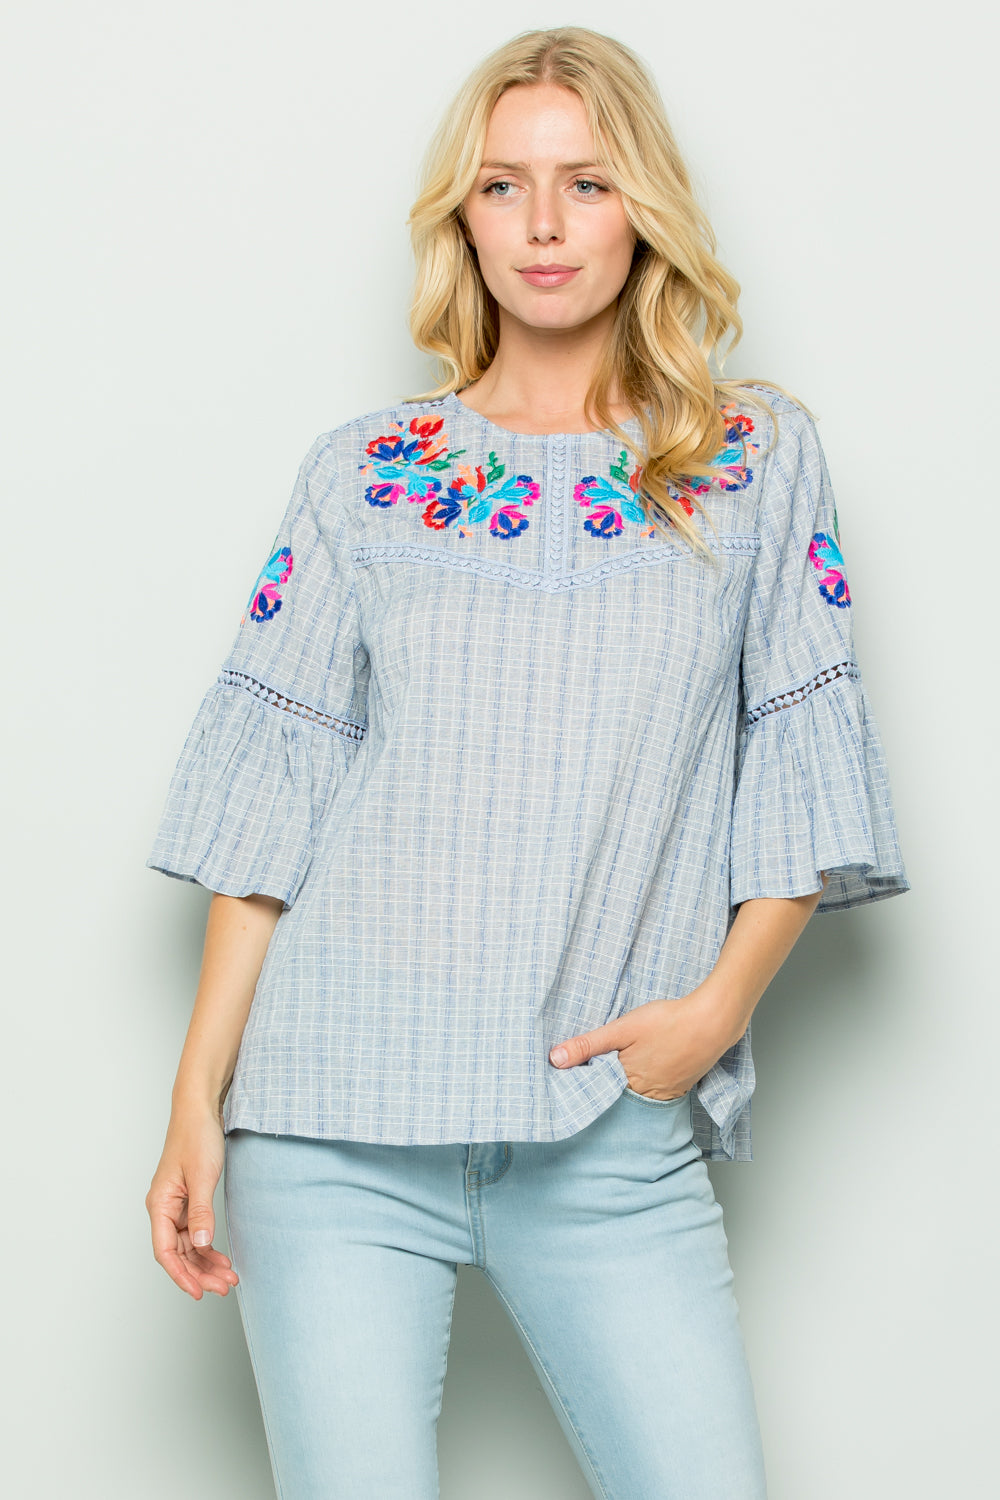 T2728 Embroidery Trimed Top - Taupe